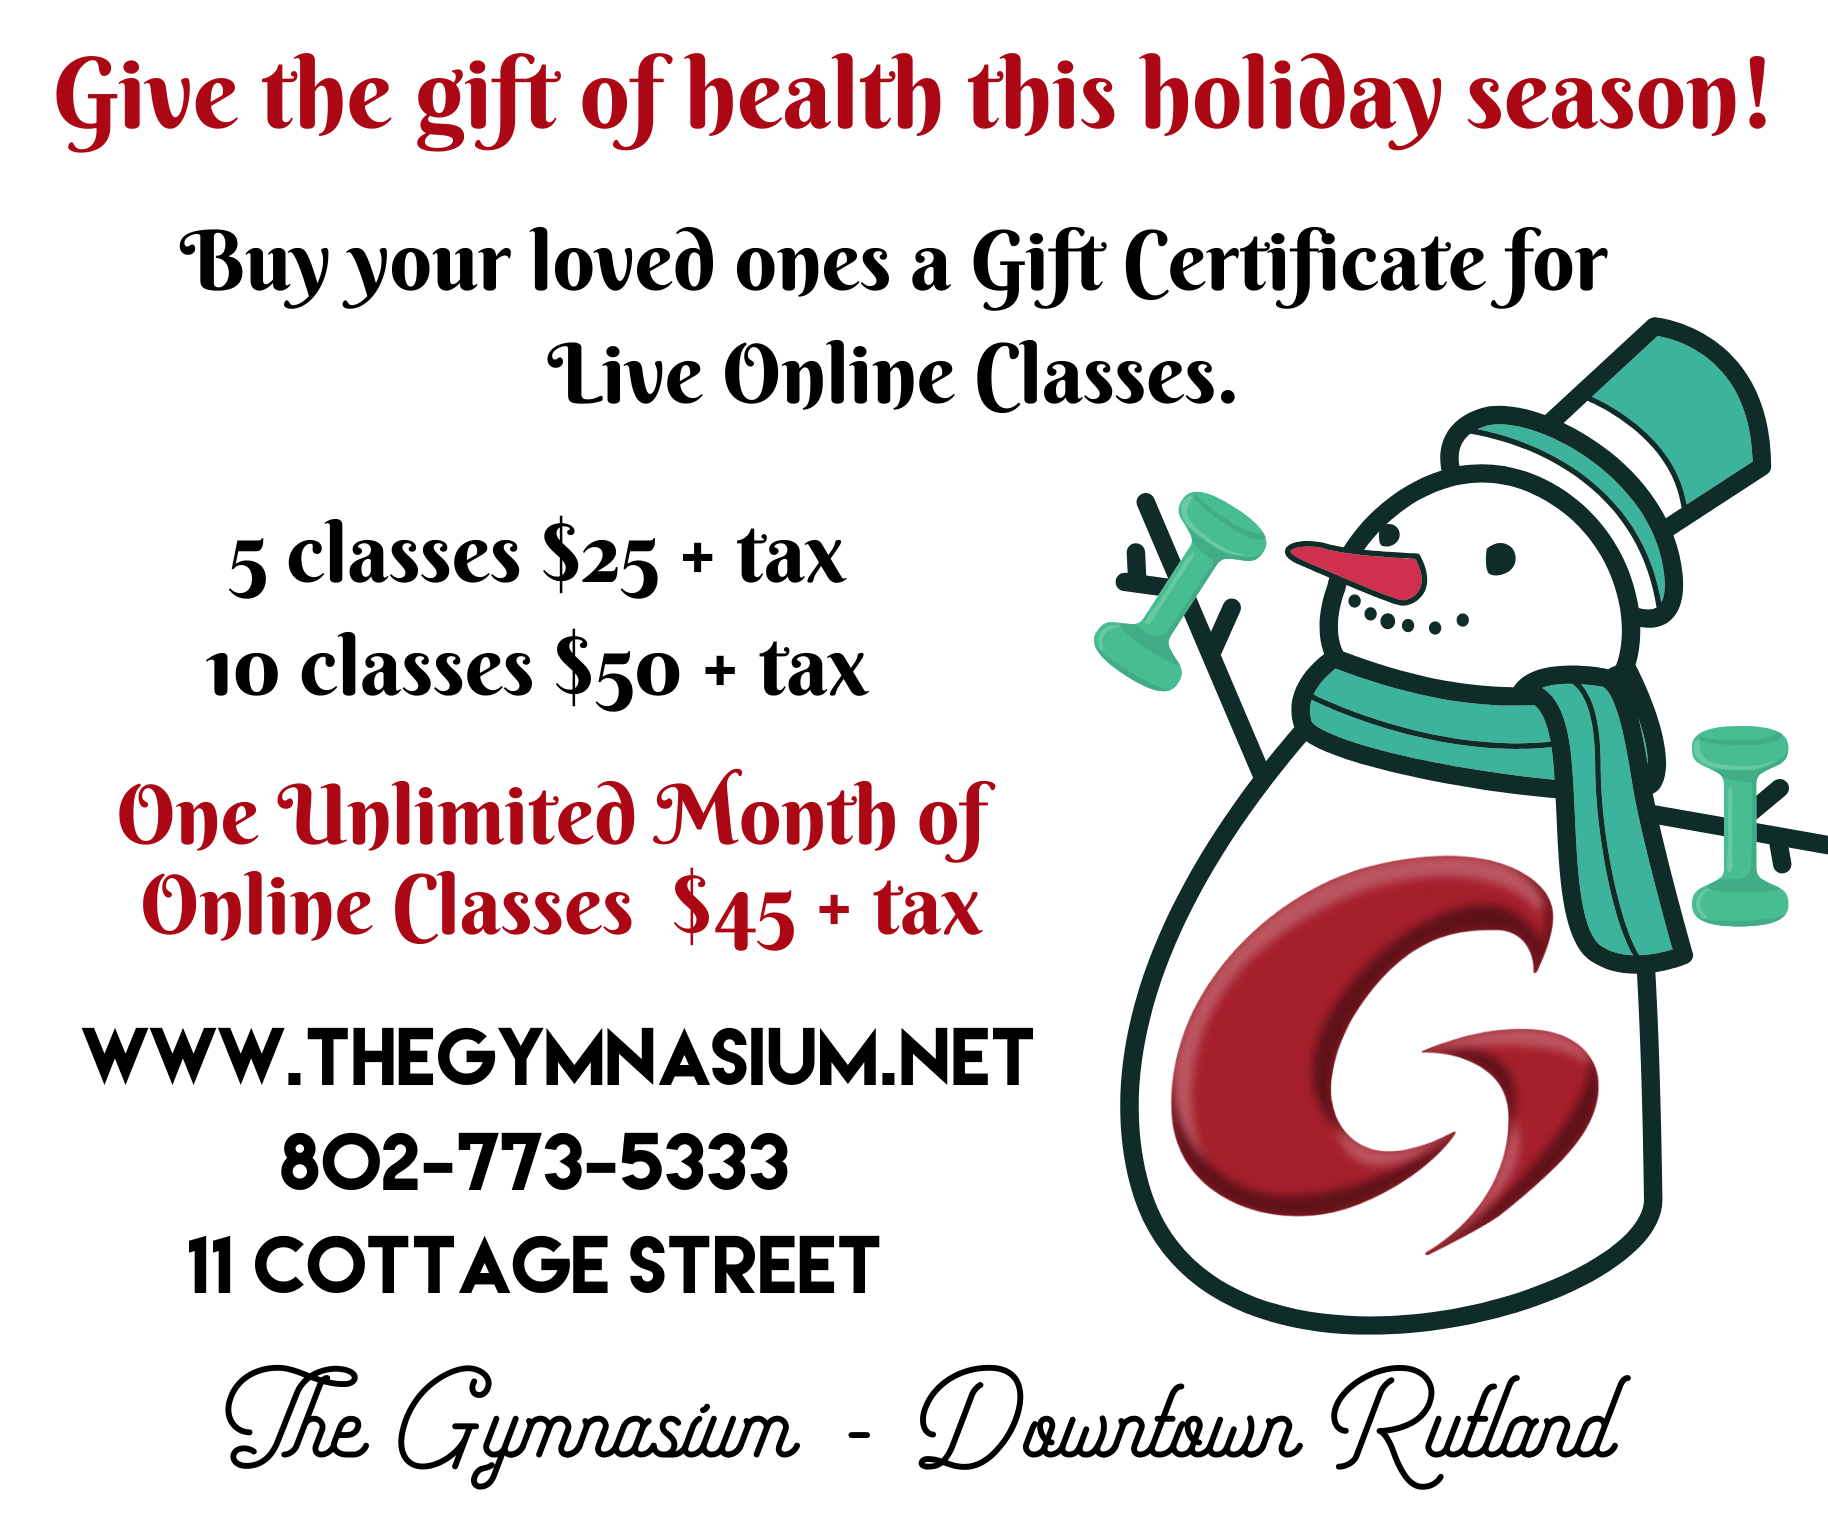 Holiday Ad for Website Homepage